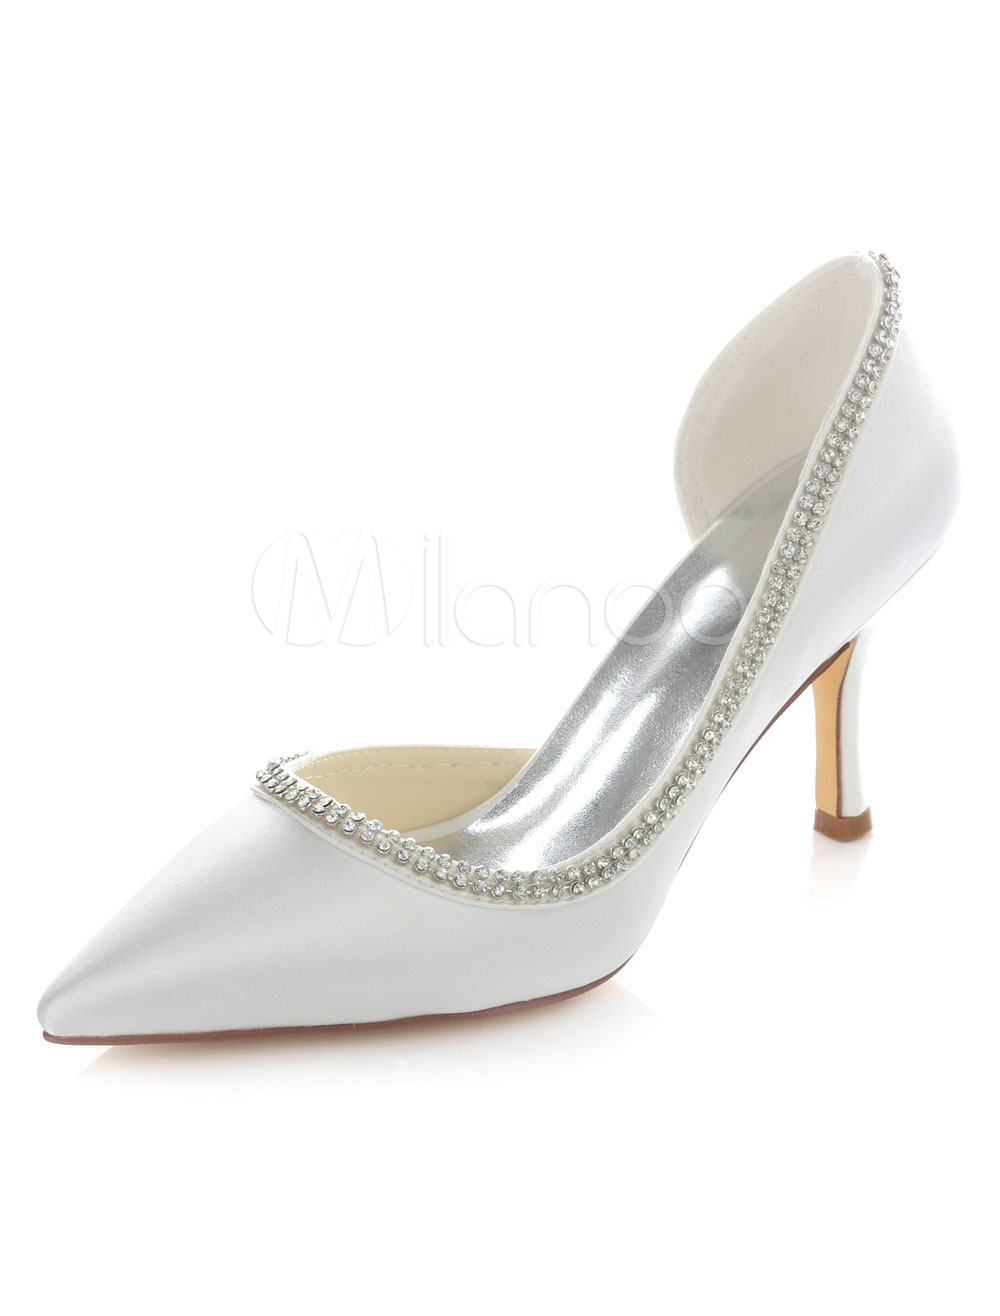 White Cut Out Bridal Pumps Pointed Toe Satin Wedding Heels for Women